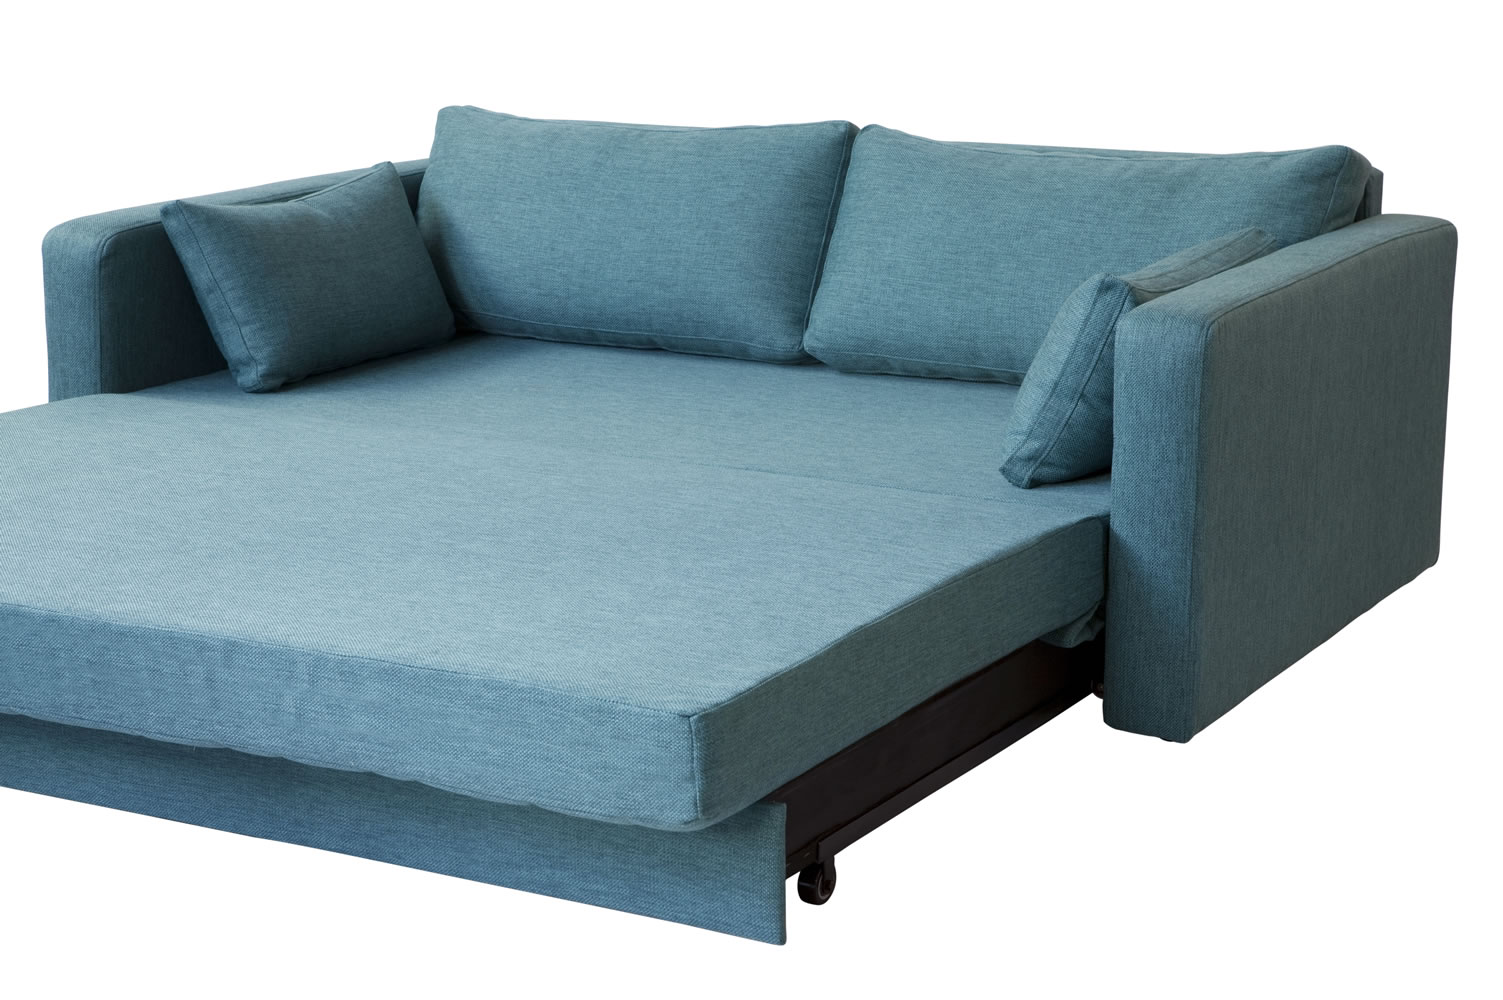 Futon y futon deltacolchones sofa cama de 2 plazas futton for Sofa cama plegable 2 plazas